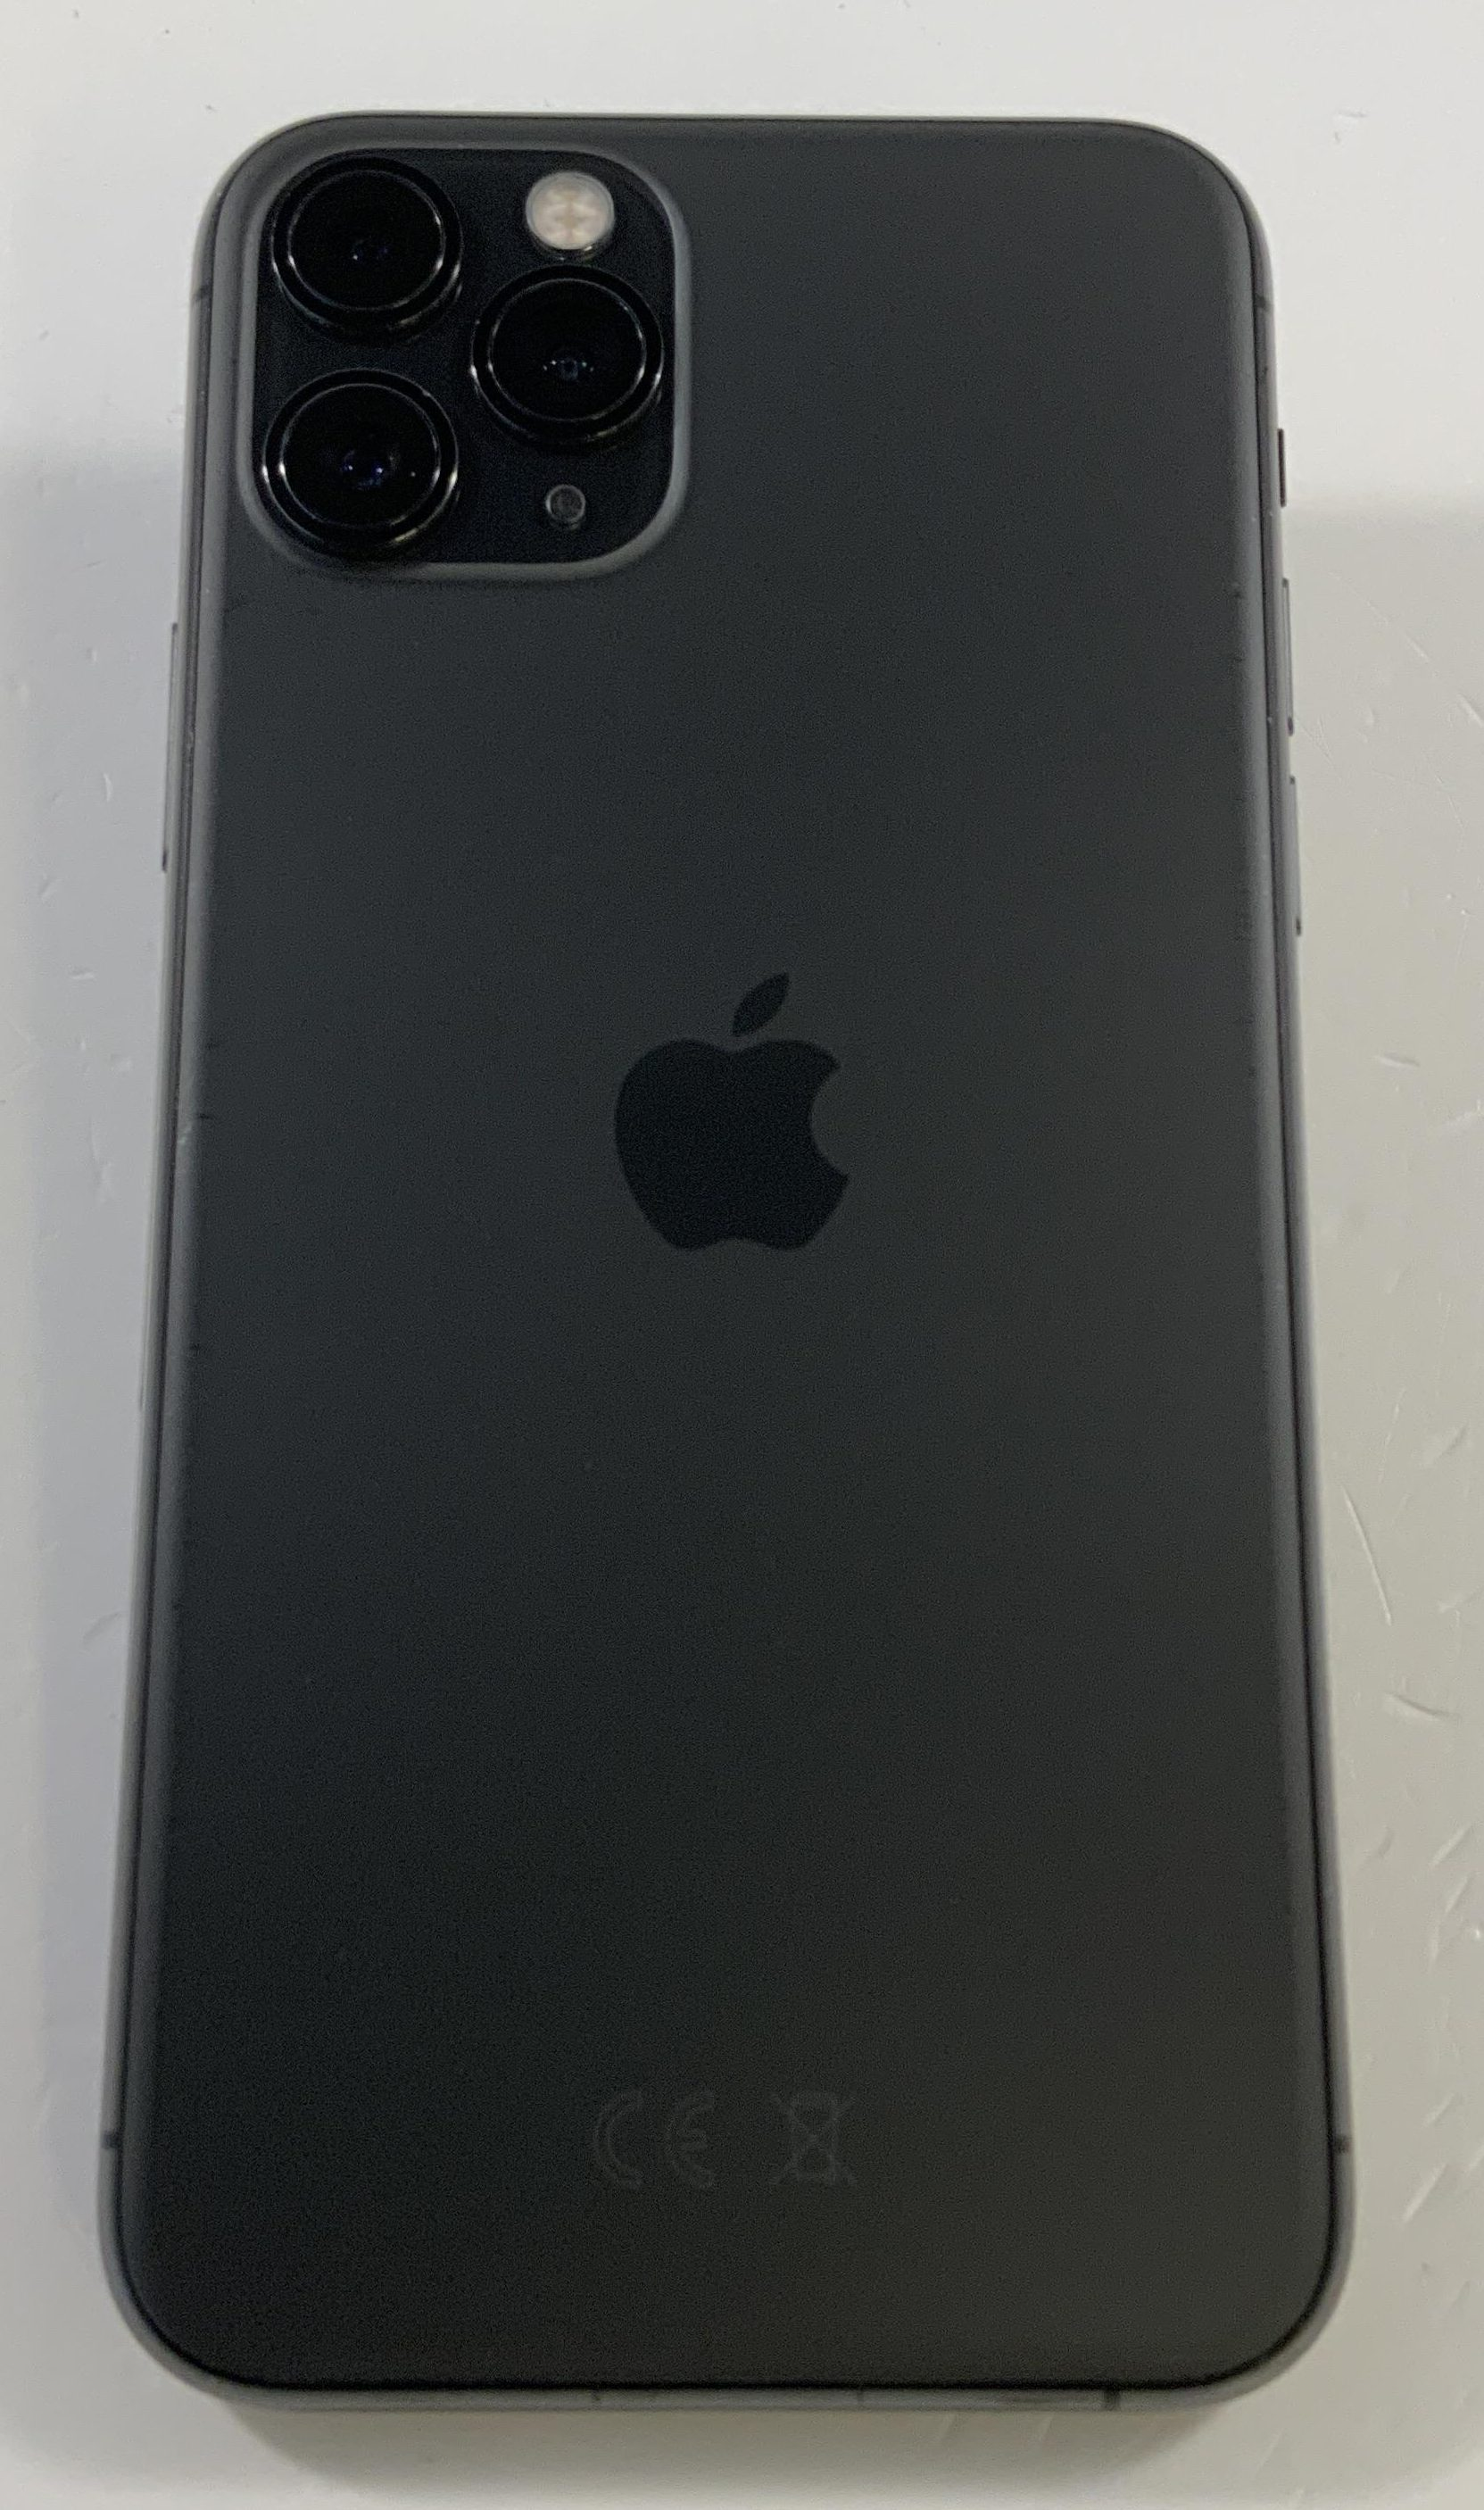 iPhone 11 Pro 256GB, 256GB, Space Gray, image 2